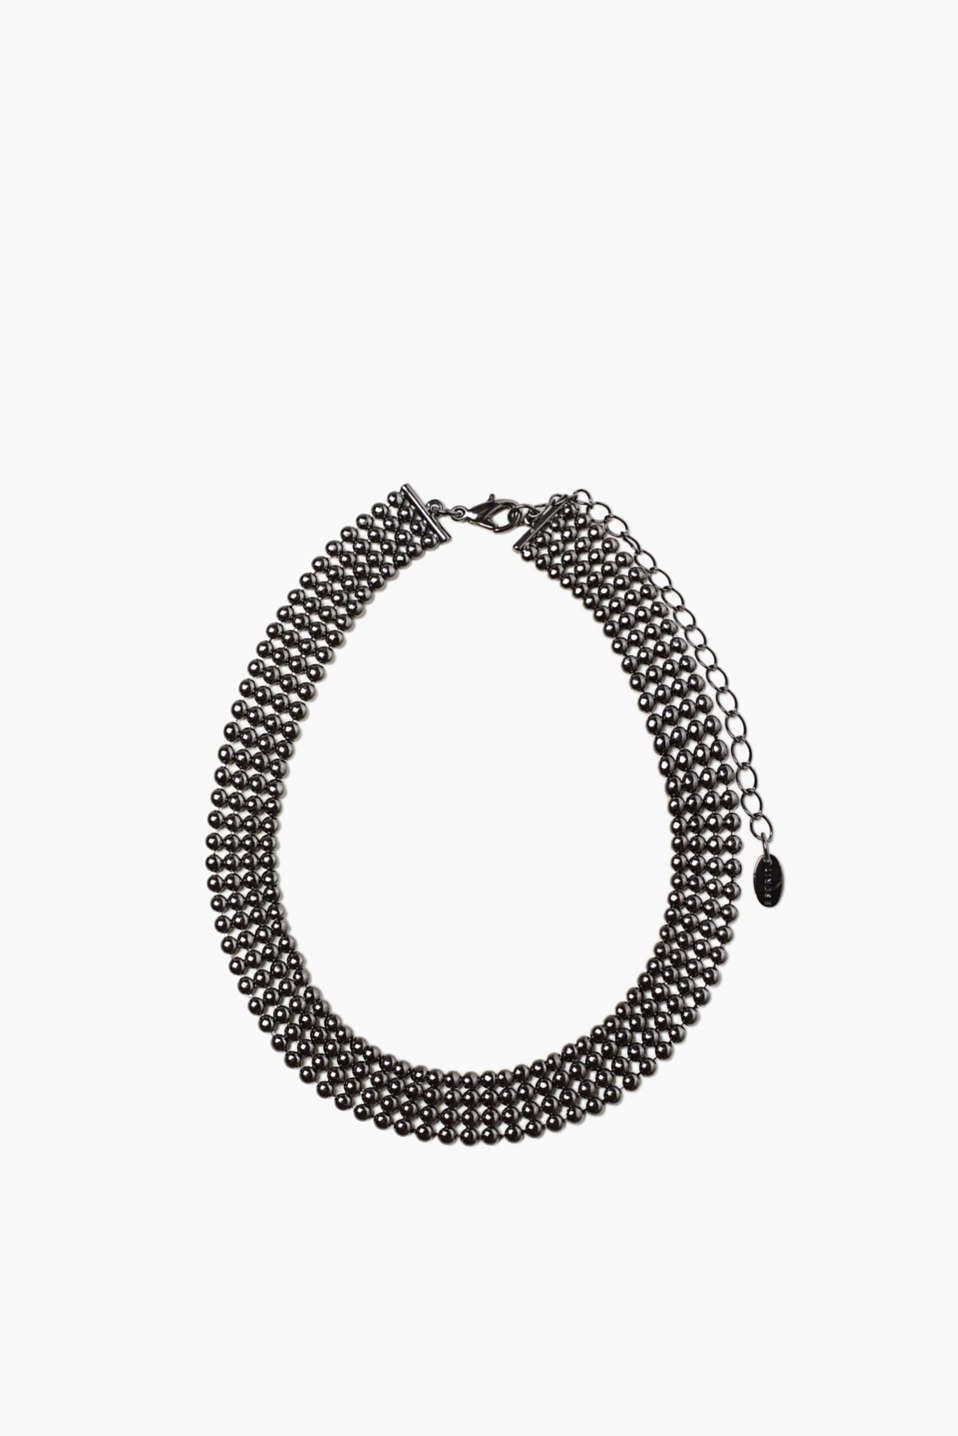 This choker made of metal beads with an adjustable carabiner clasp can be elegant or part of a punk look!